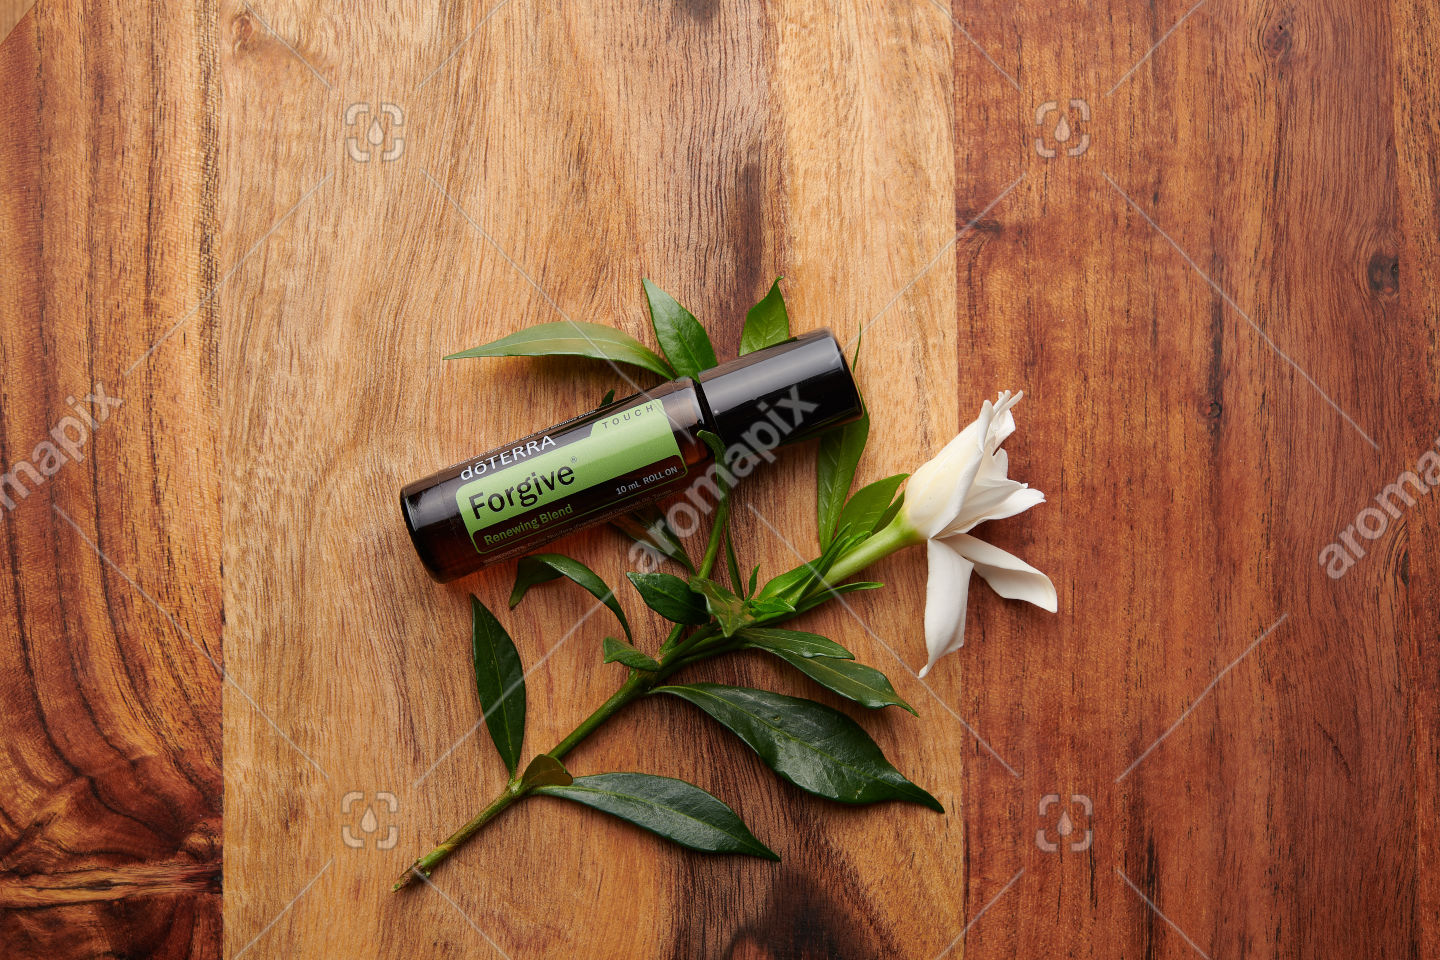 doTERRA Forgive Touch with a flower on wood